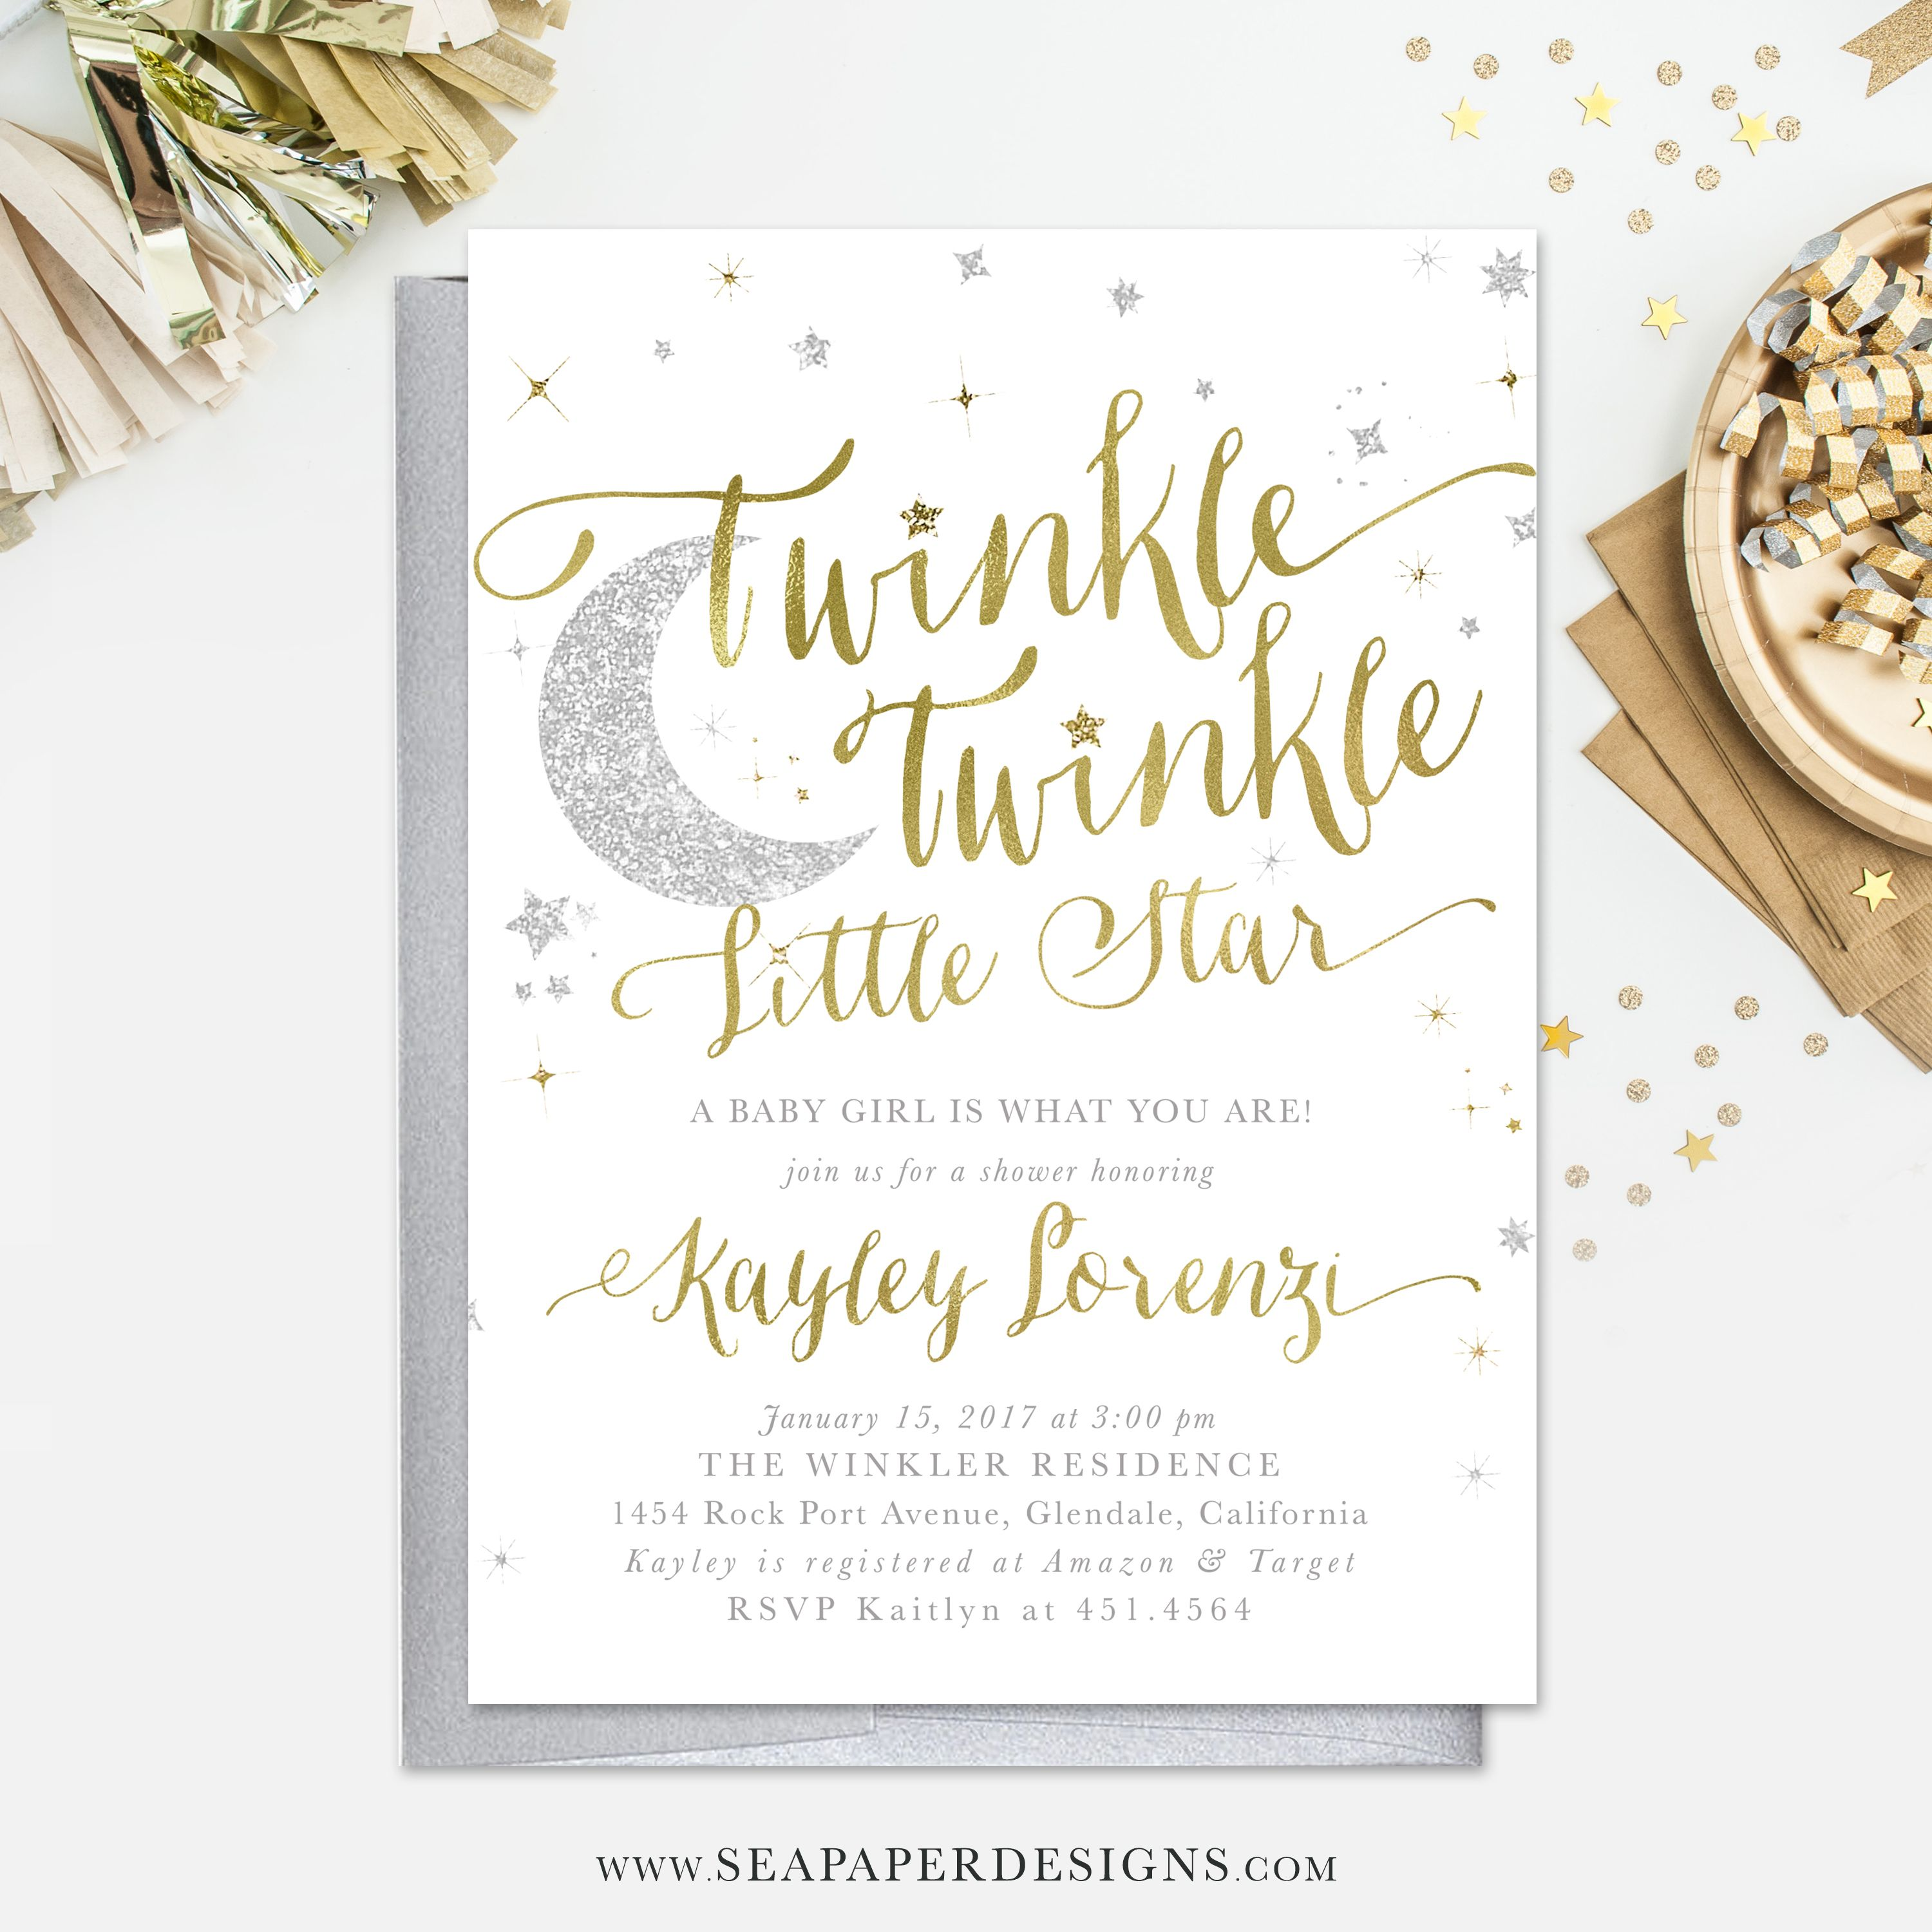 printable bunny invitations baby invitation image shower awesome rustic il gbch fullxfull collection